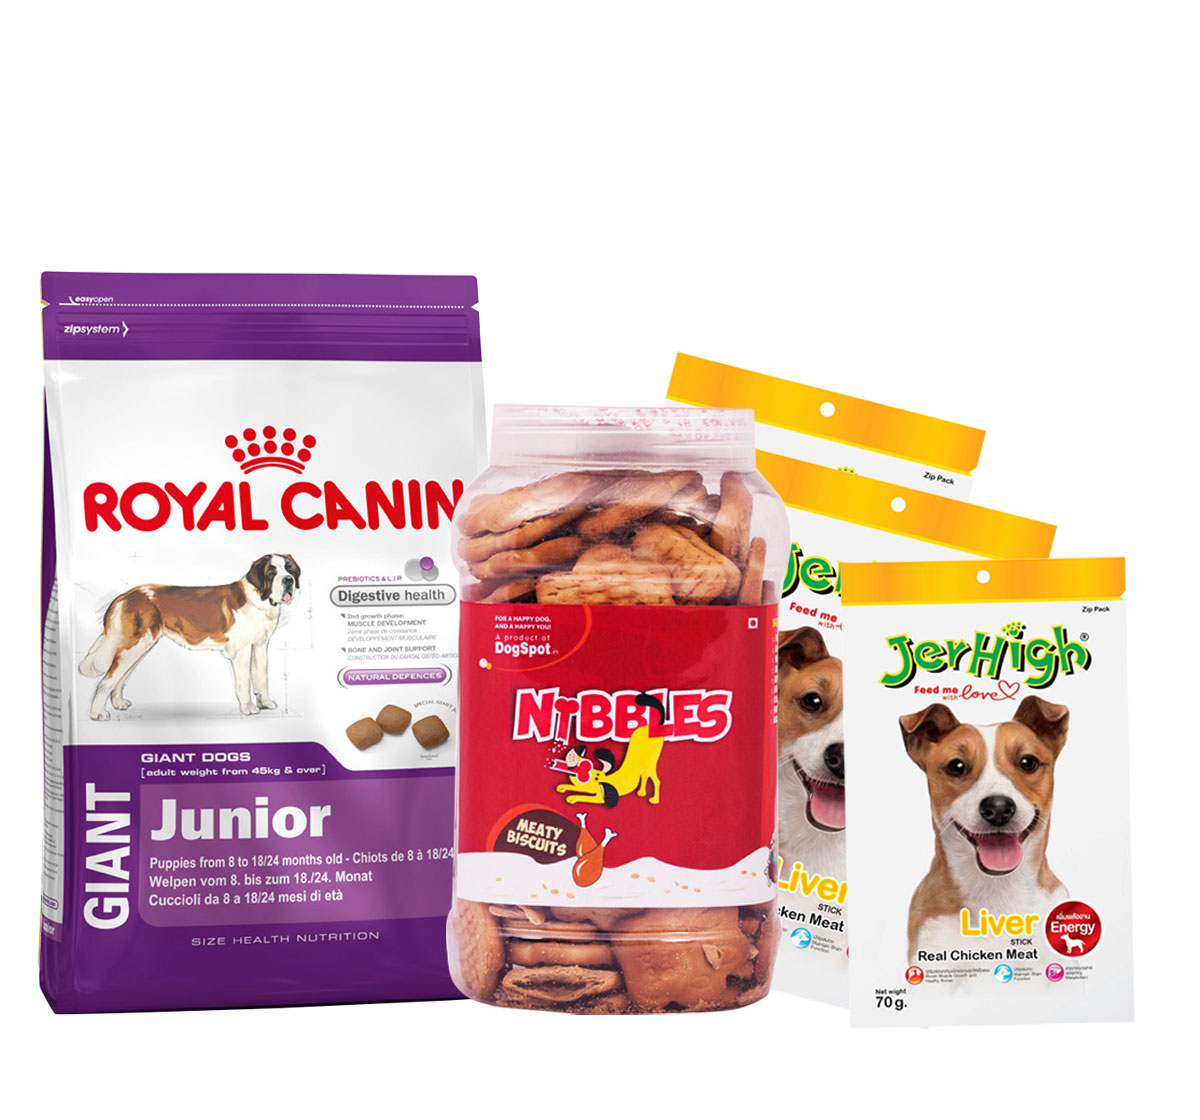 Royal Canin Giant Junior - 15 Kg With Treats & Biscuit